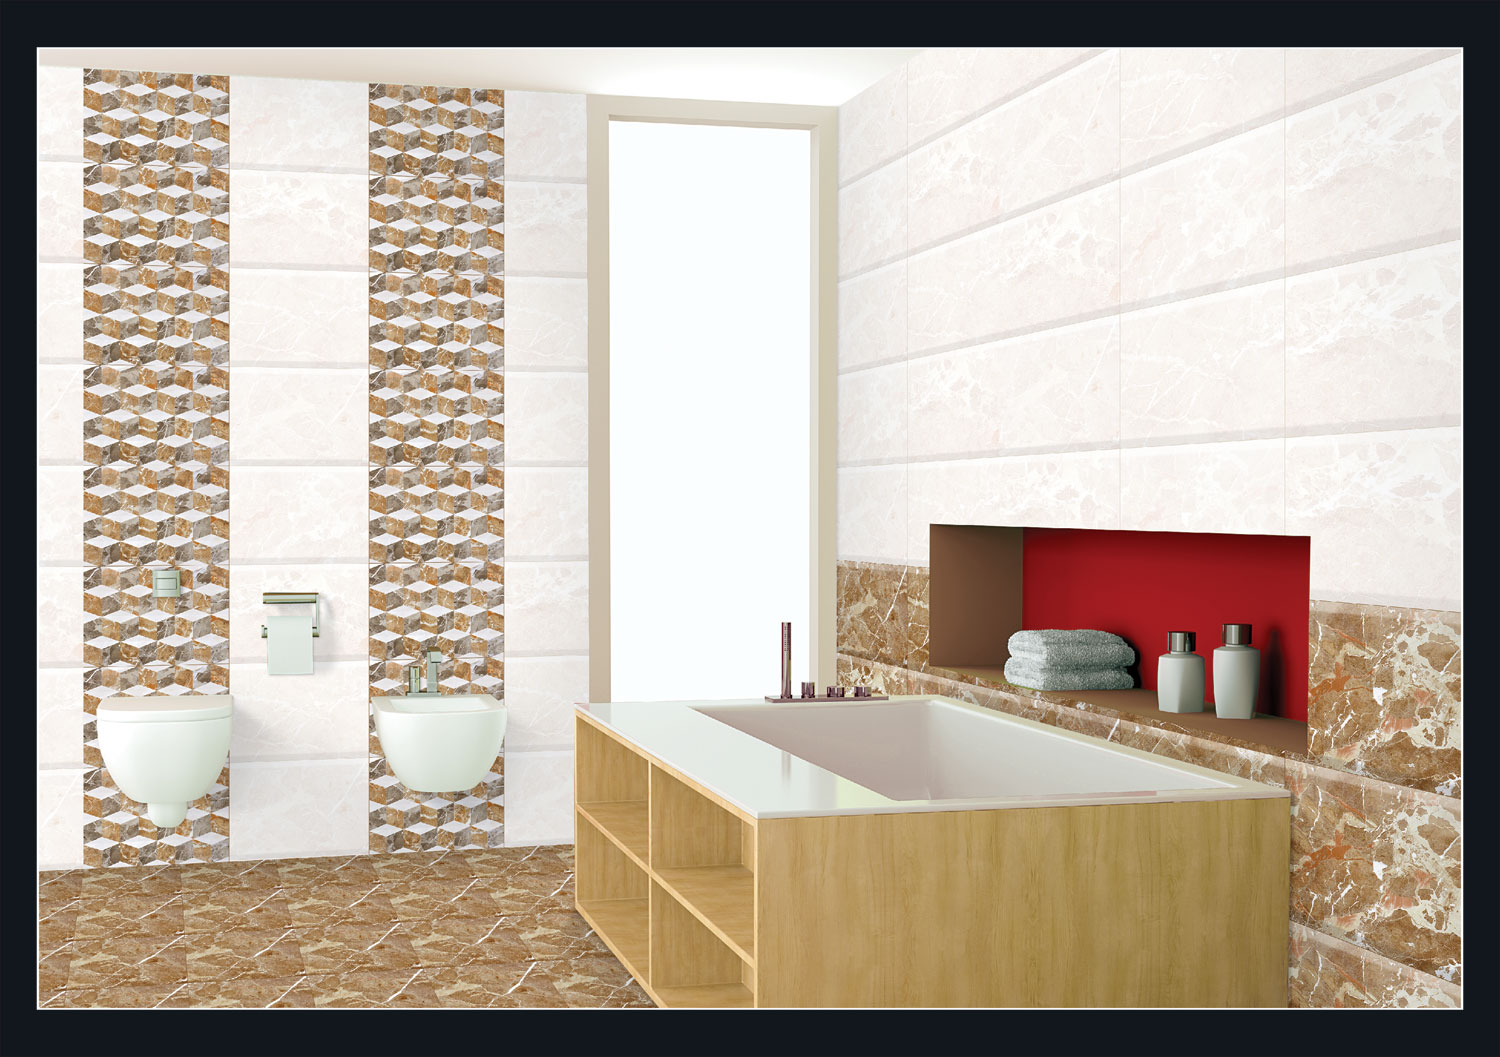 Digital Wall Tiles 12x18 300x450mm Sasta Tiles